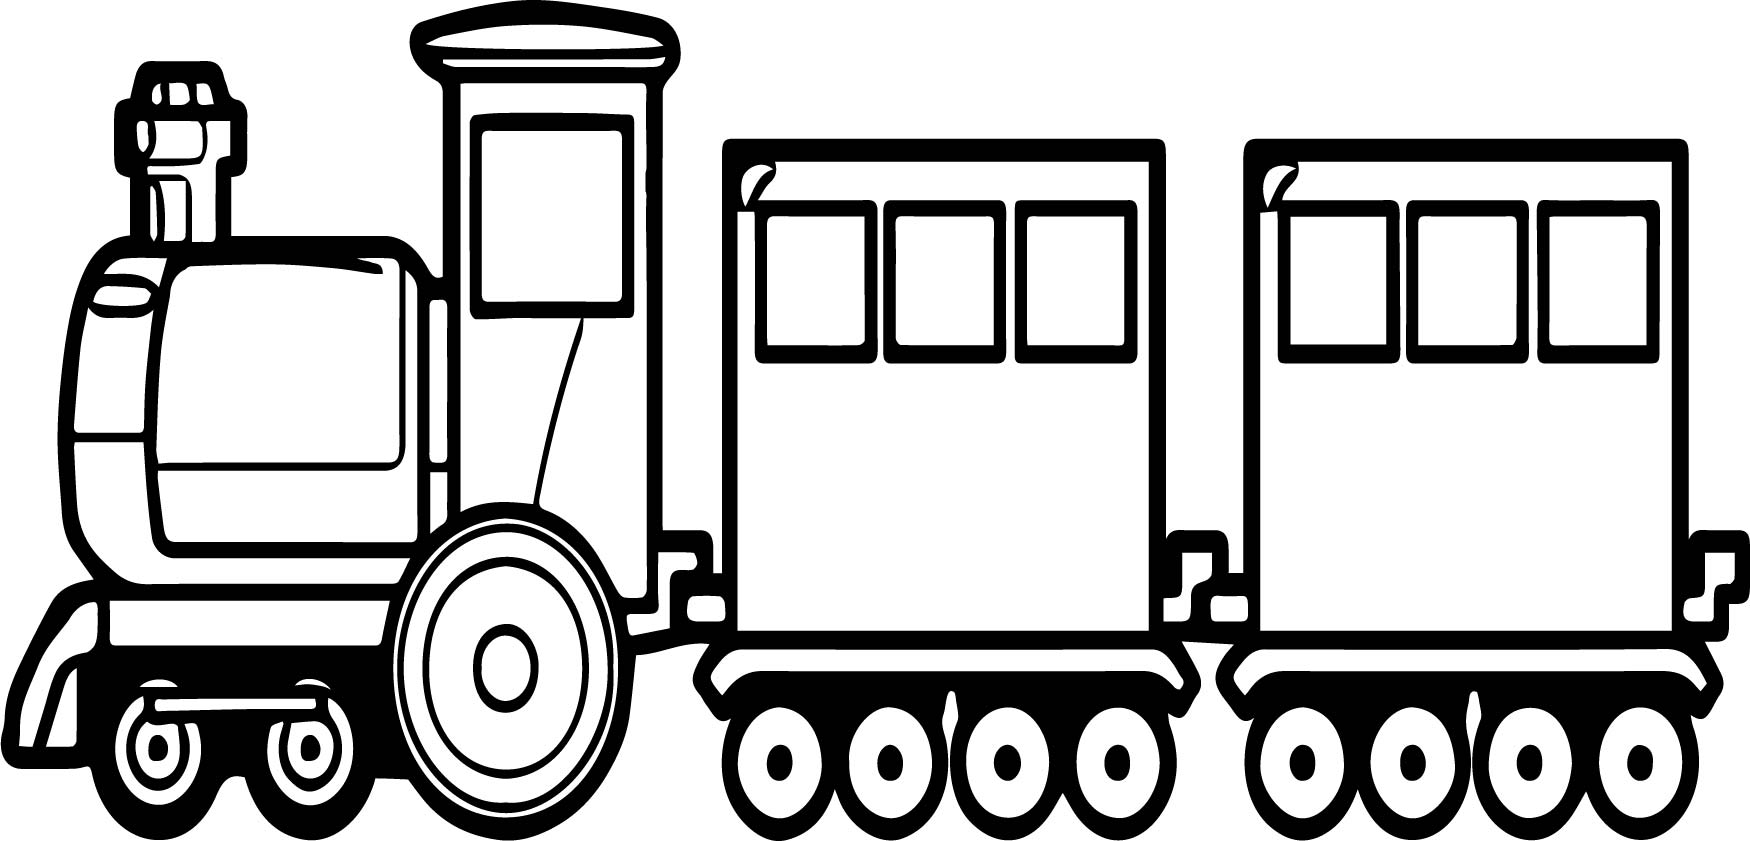 1750x841 Go Train Coloring Page Wecoloringpage